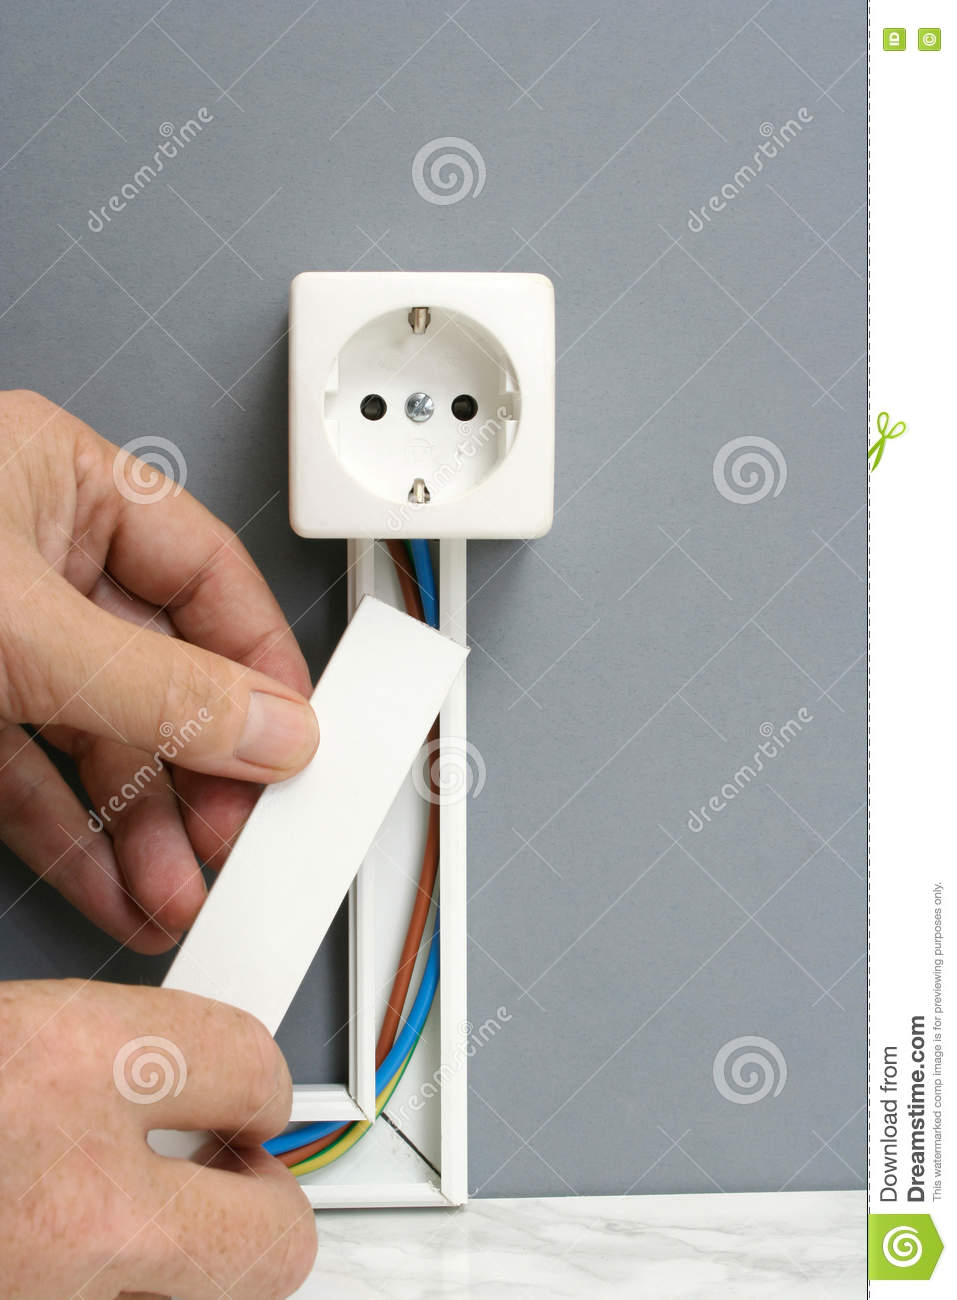 Installing a power outlet with surface mount electric wiring channel